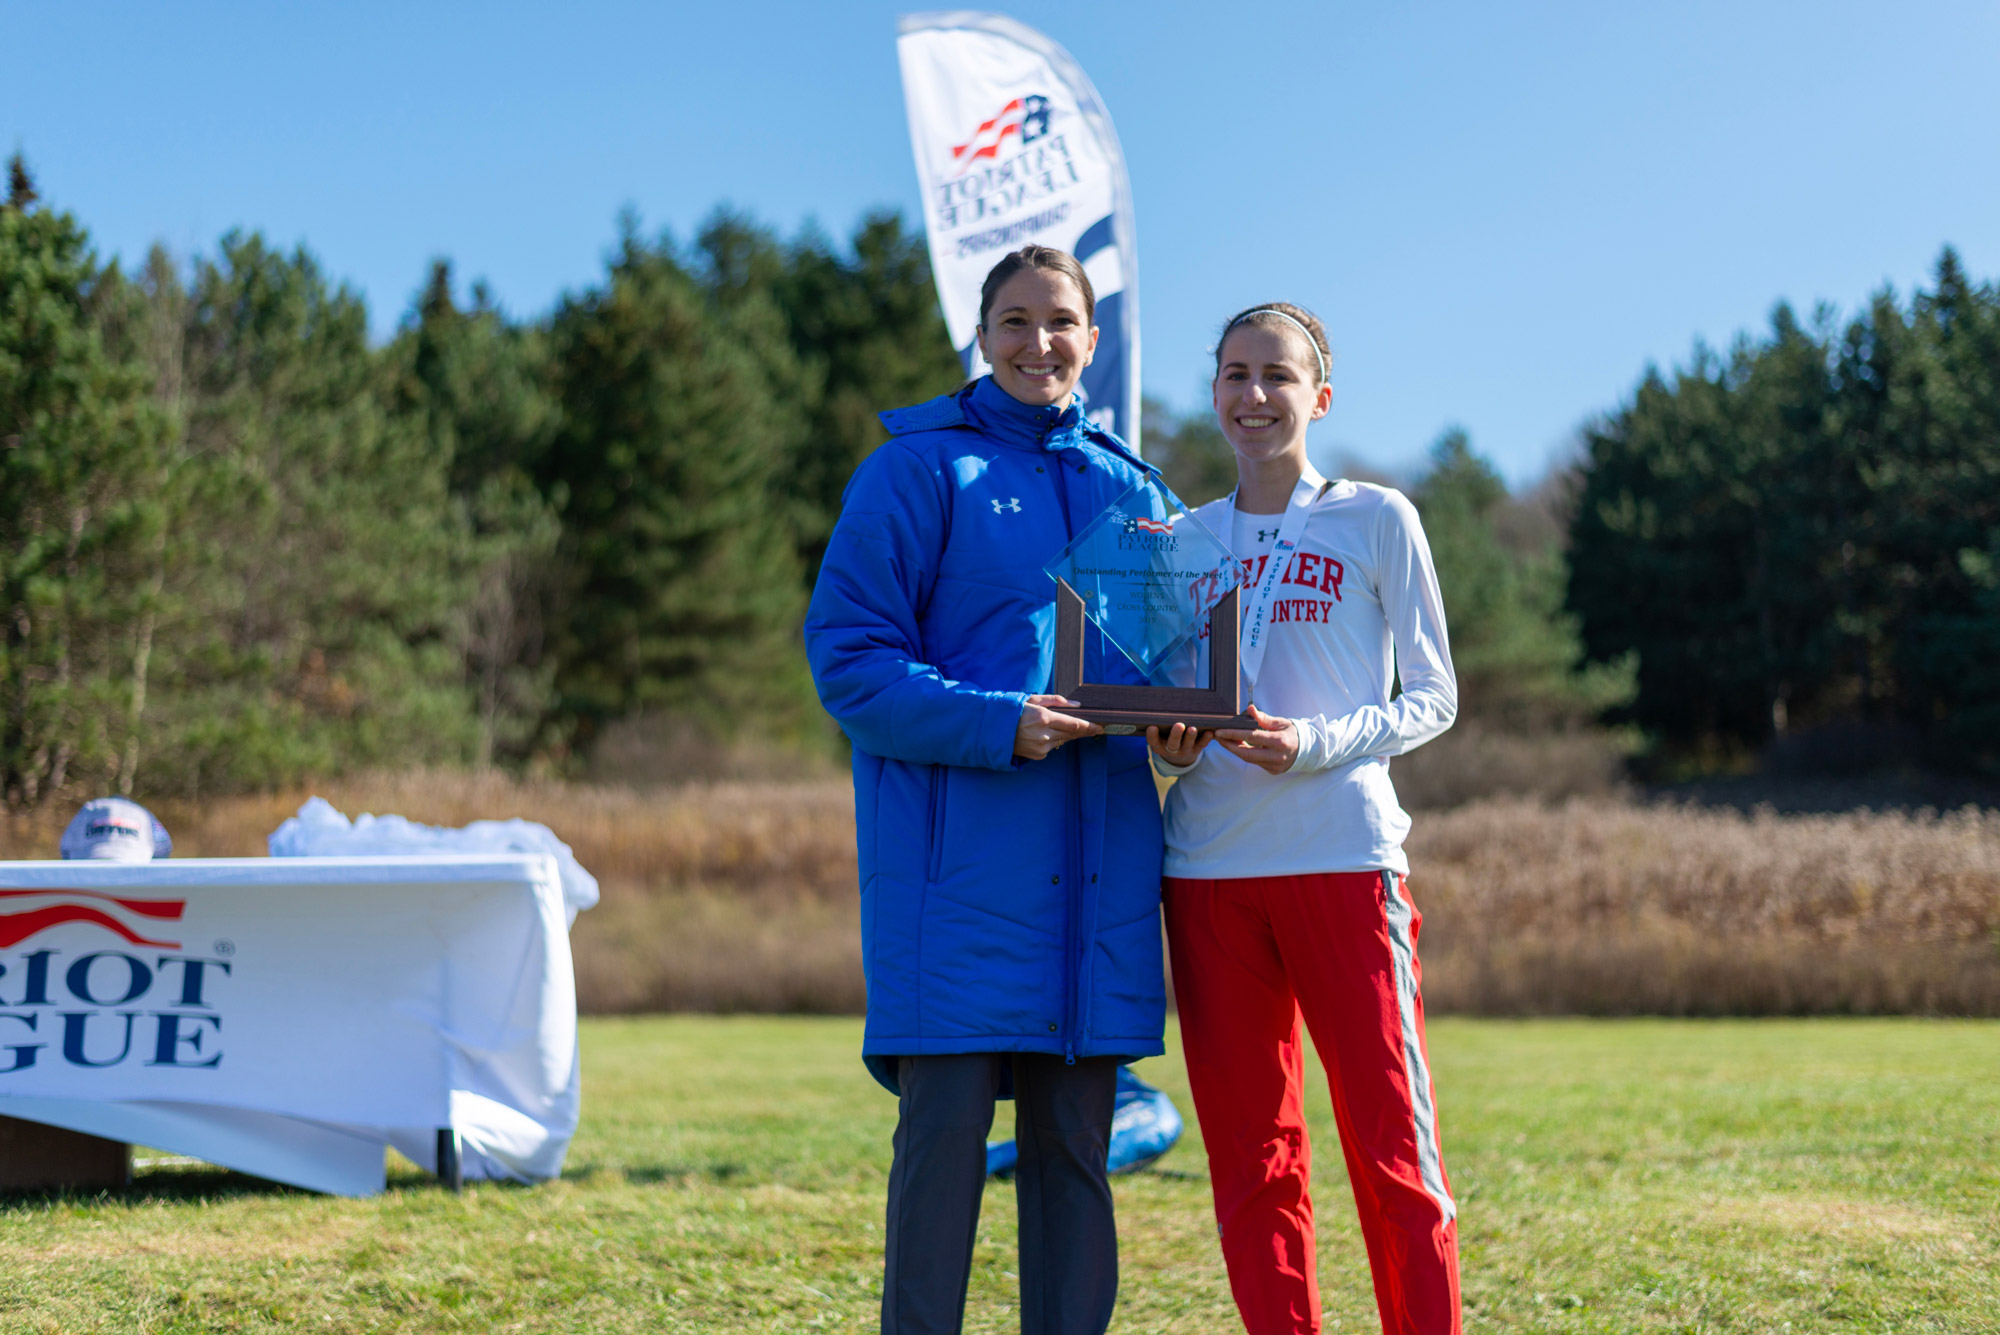 Abigail Gugel holds her award while standing next to Emily Parkins, Director for Championships and Sport Management for the Patriot League.